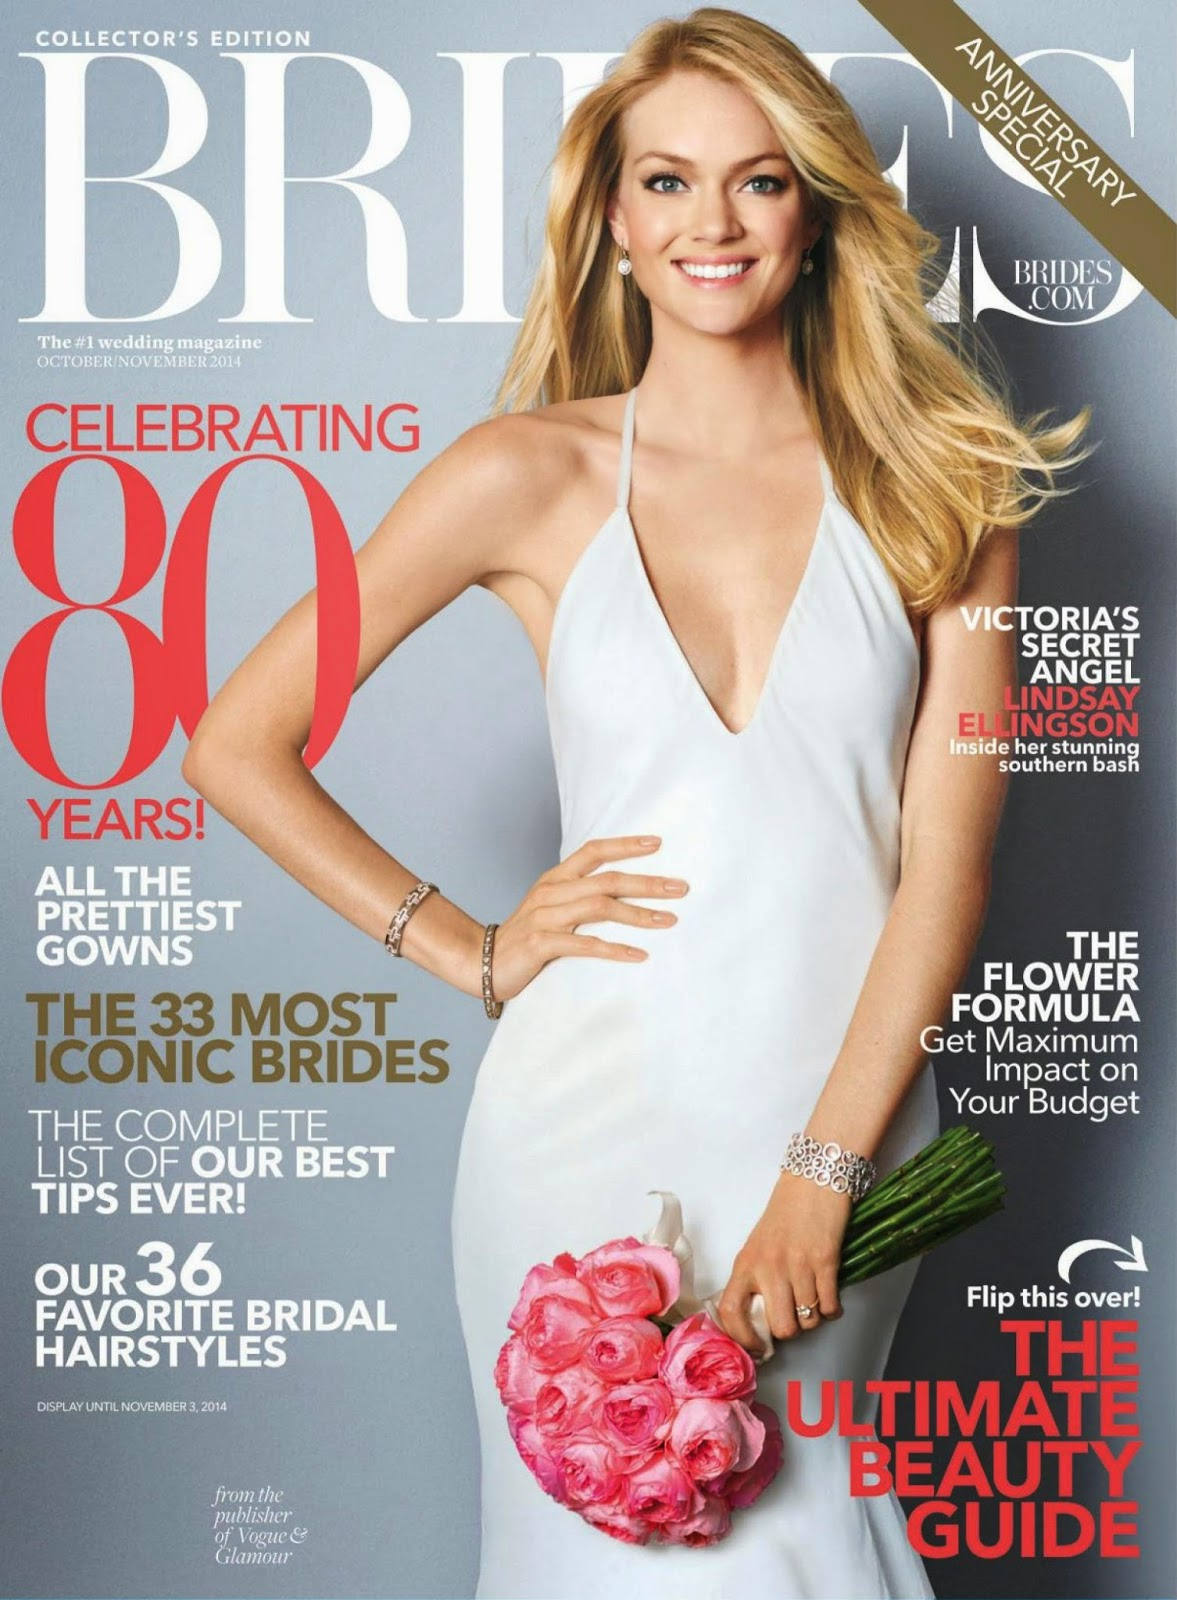 Lindsay+Ellingson+-+Brides+Magazine,+USA,+October+2014_01_1.jpg